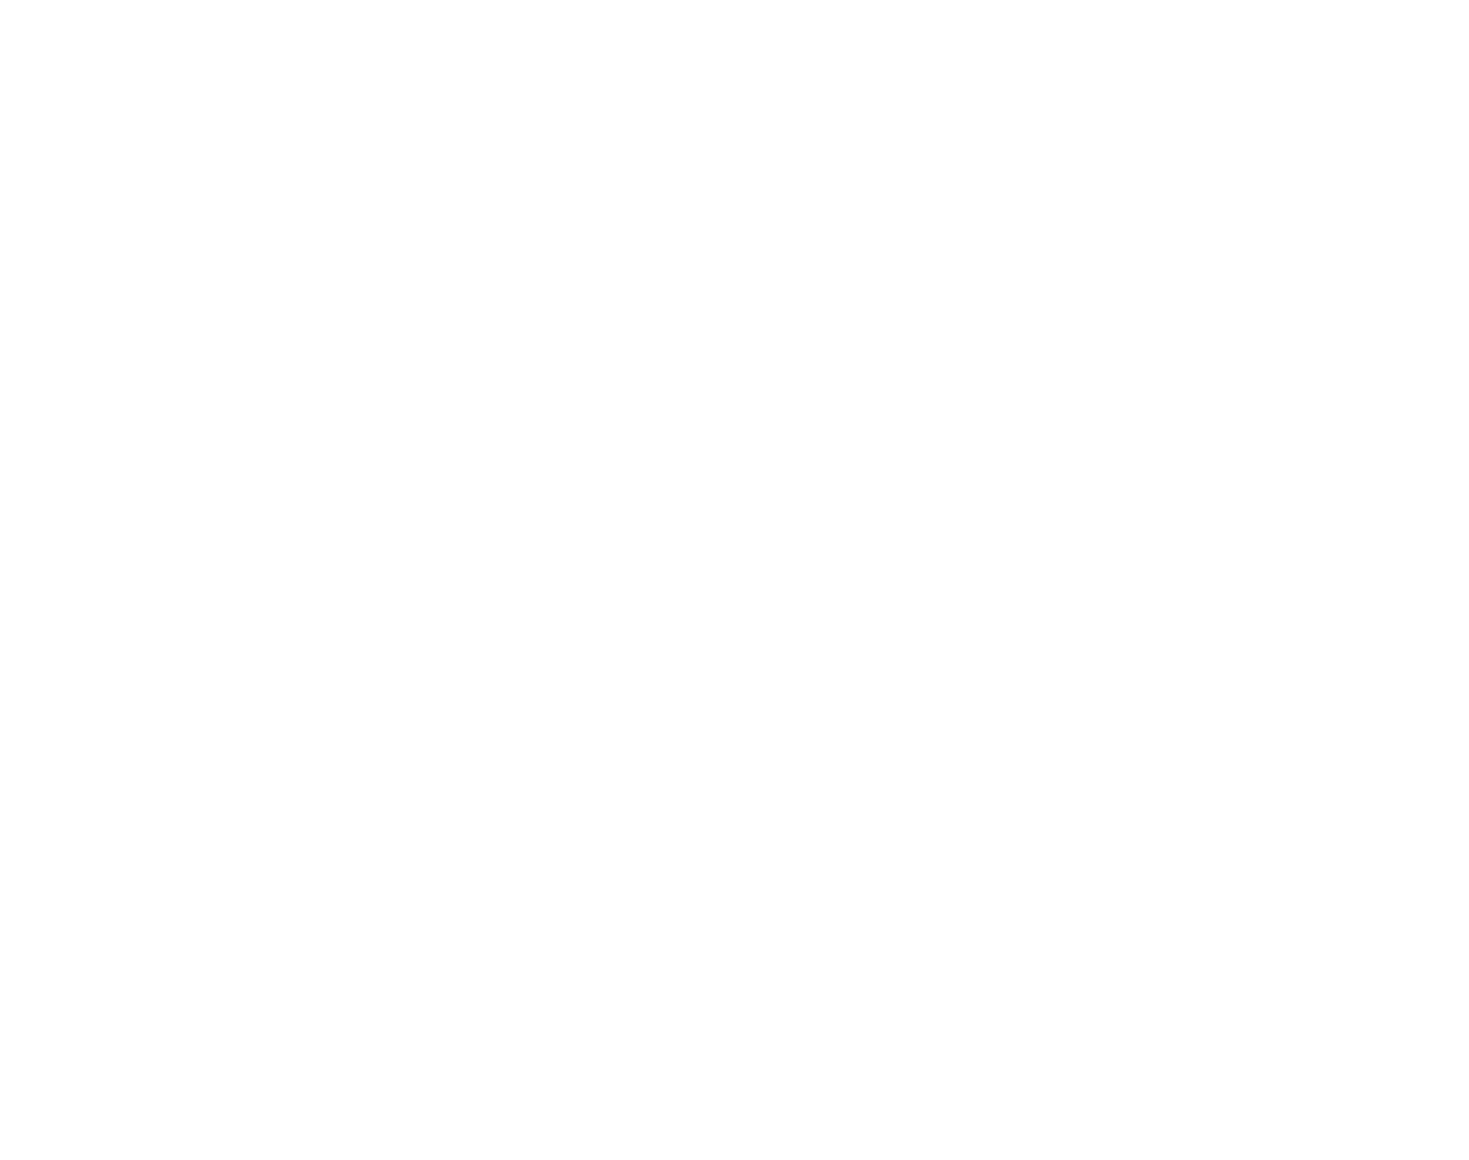 Riverside Lodge Ceres